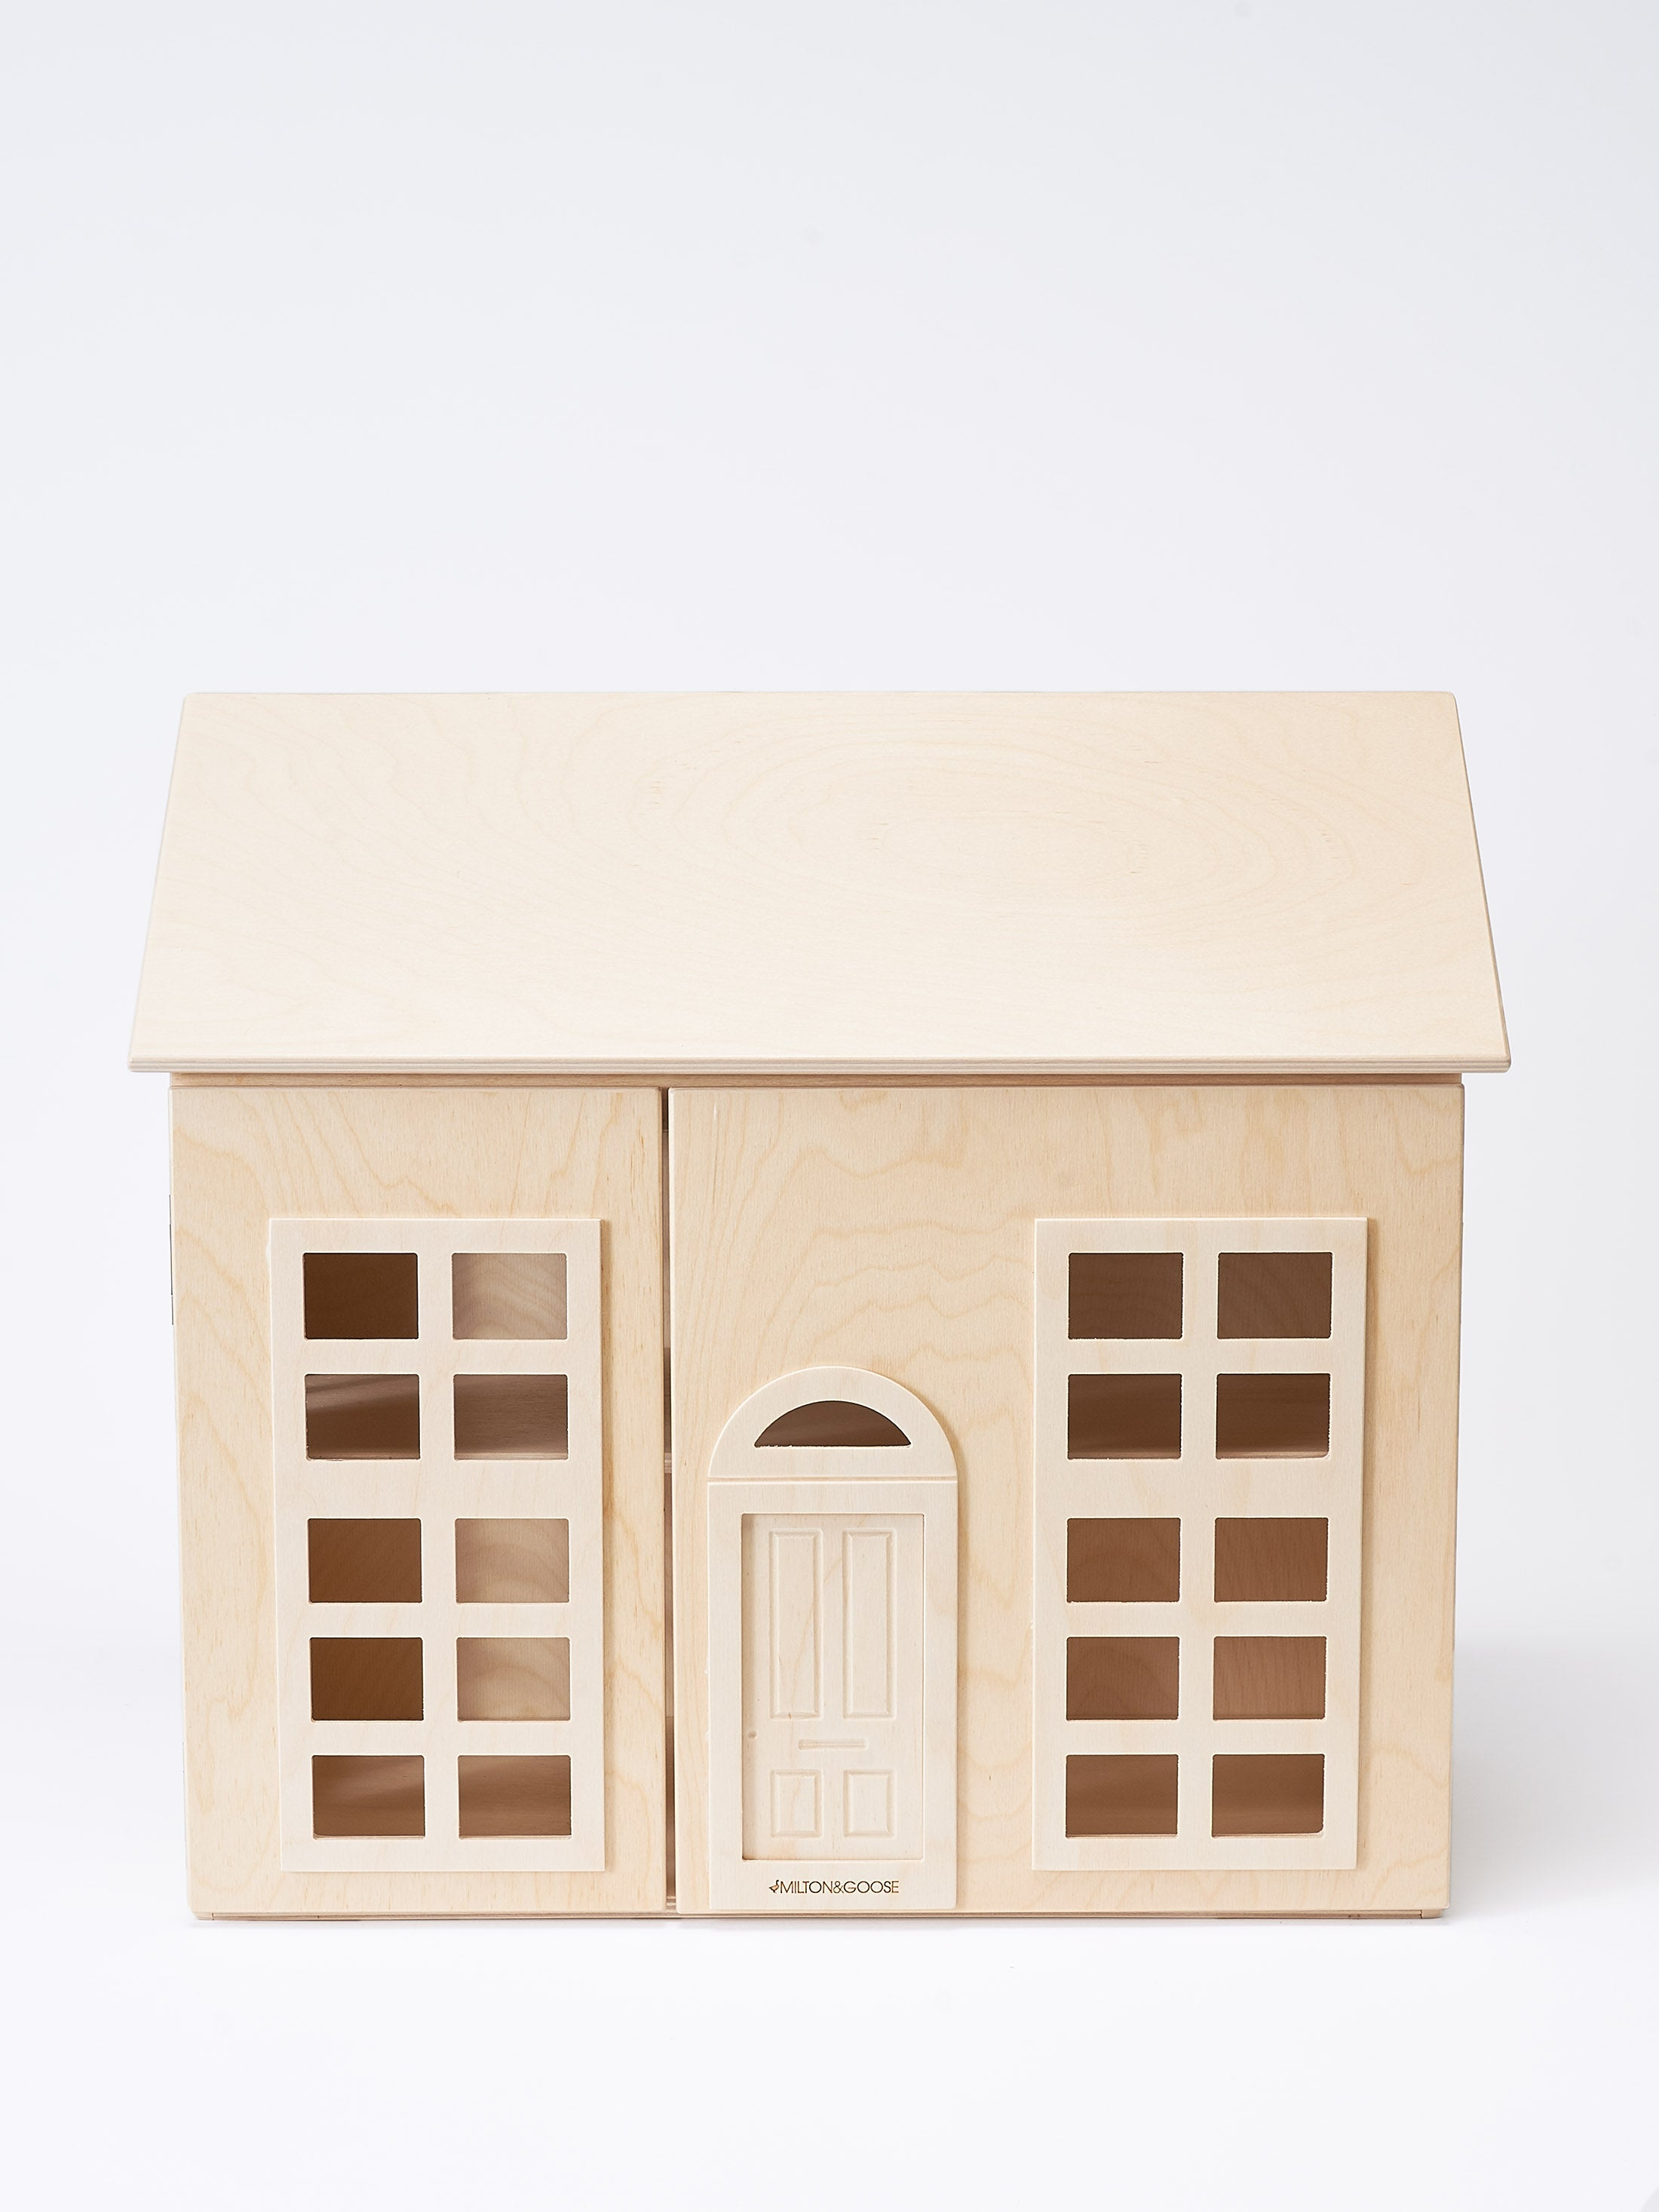 Hudson Dollhouse (Pre-order for Singapore address only)